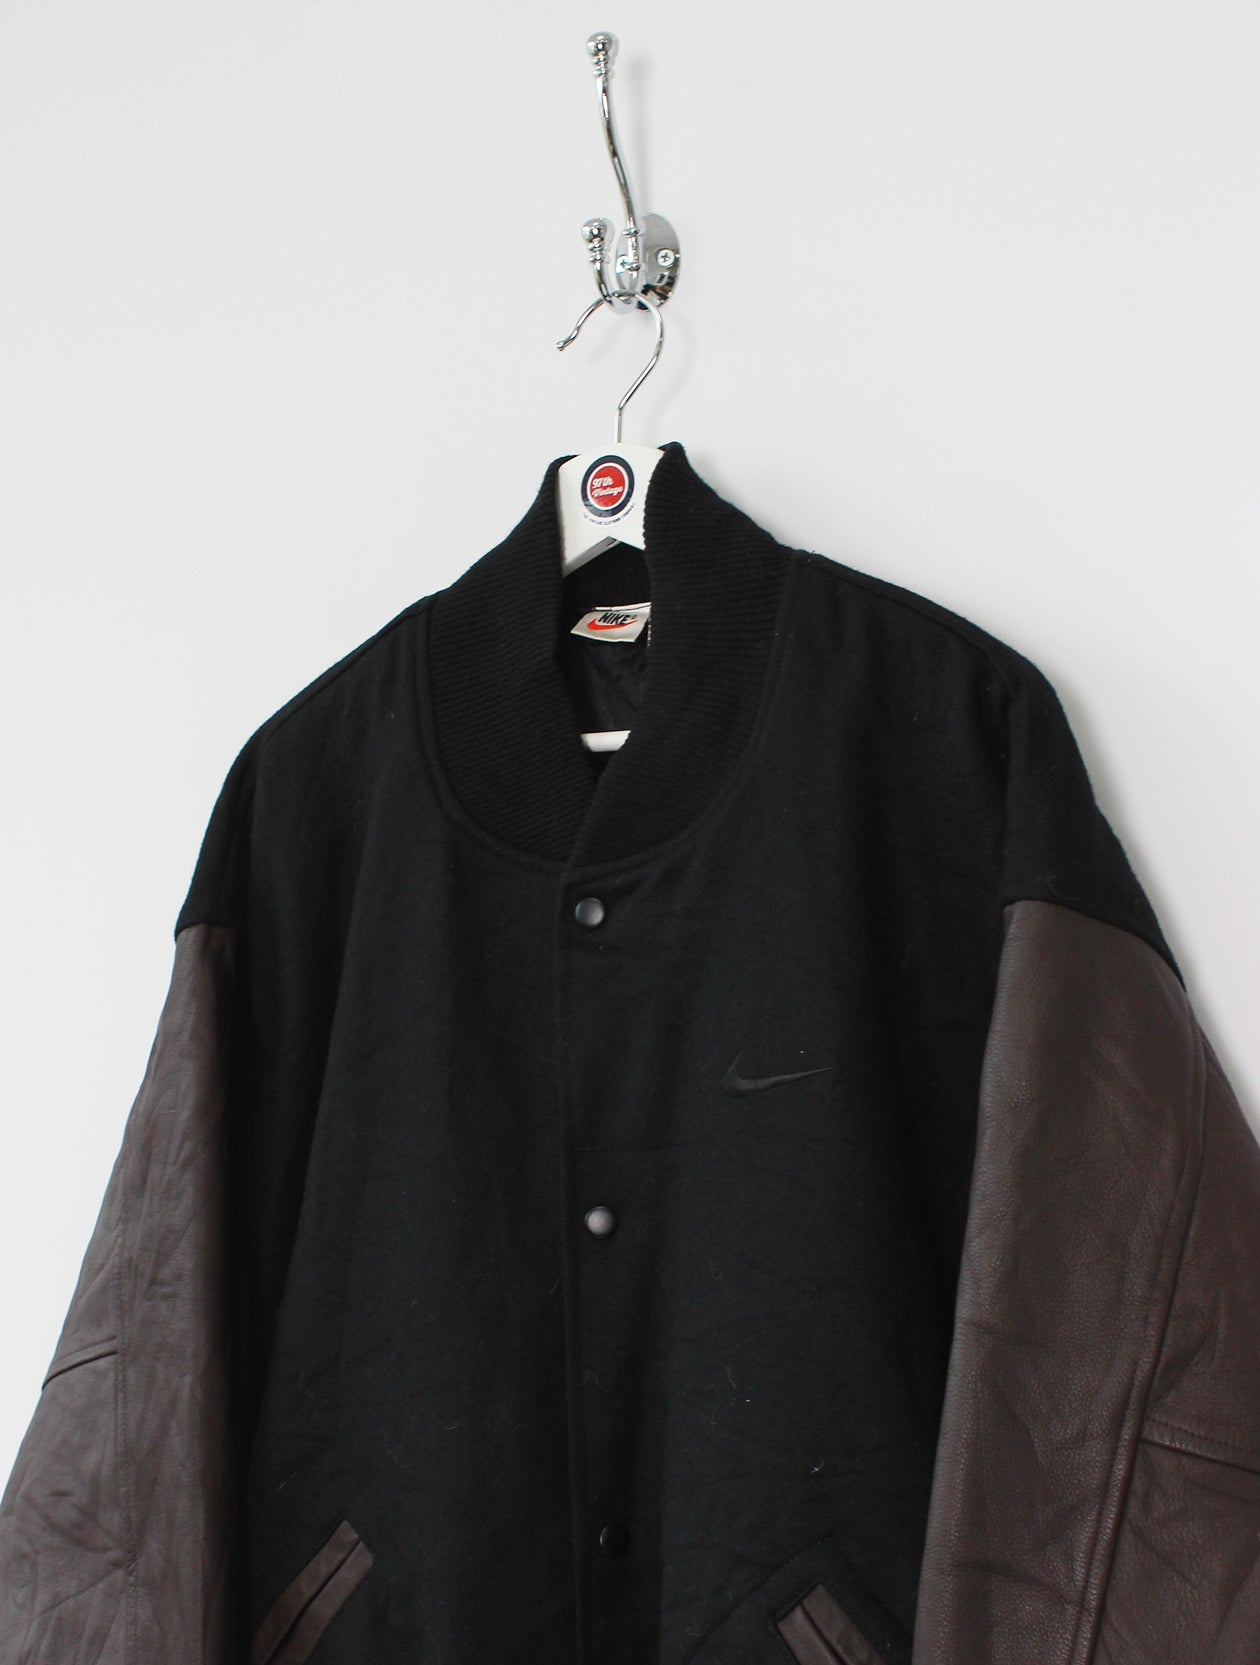 5b7ff6838 Nike Leather/Wool Bomber Jacket (L)